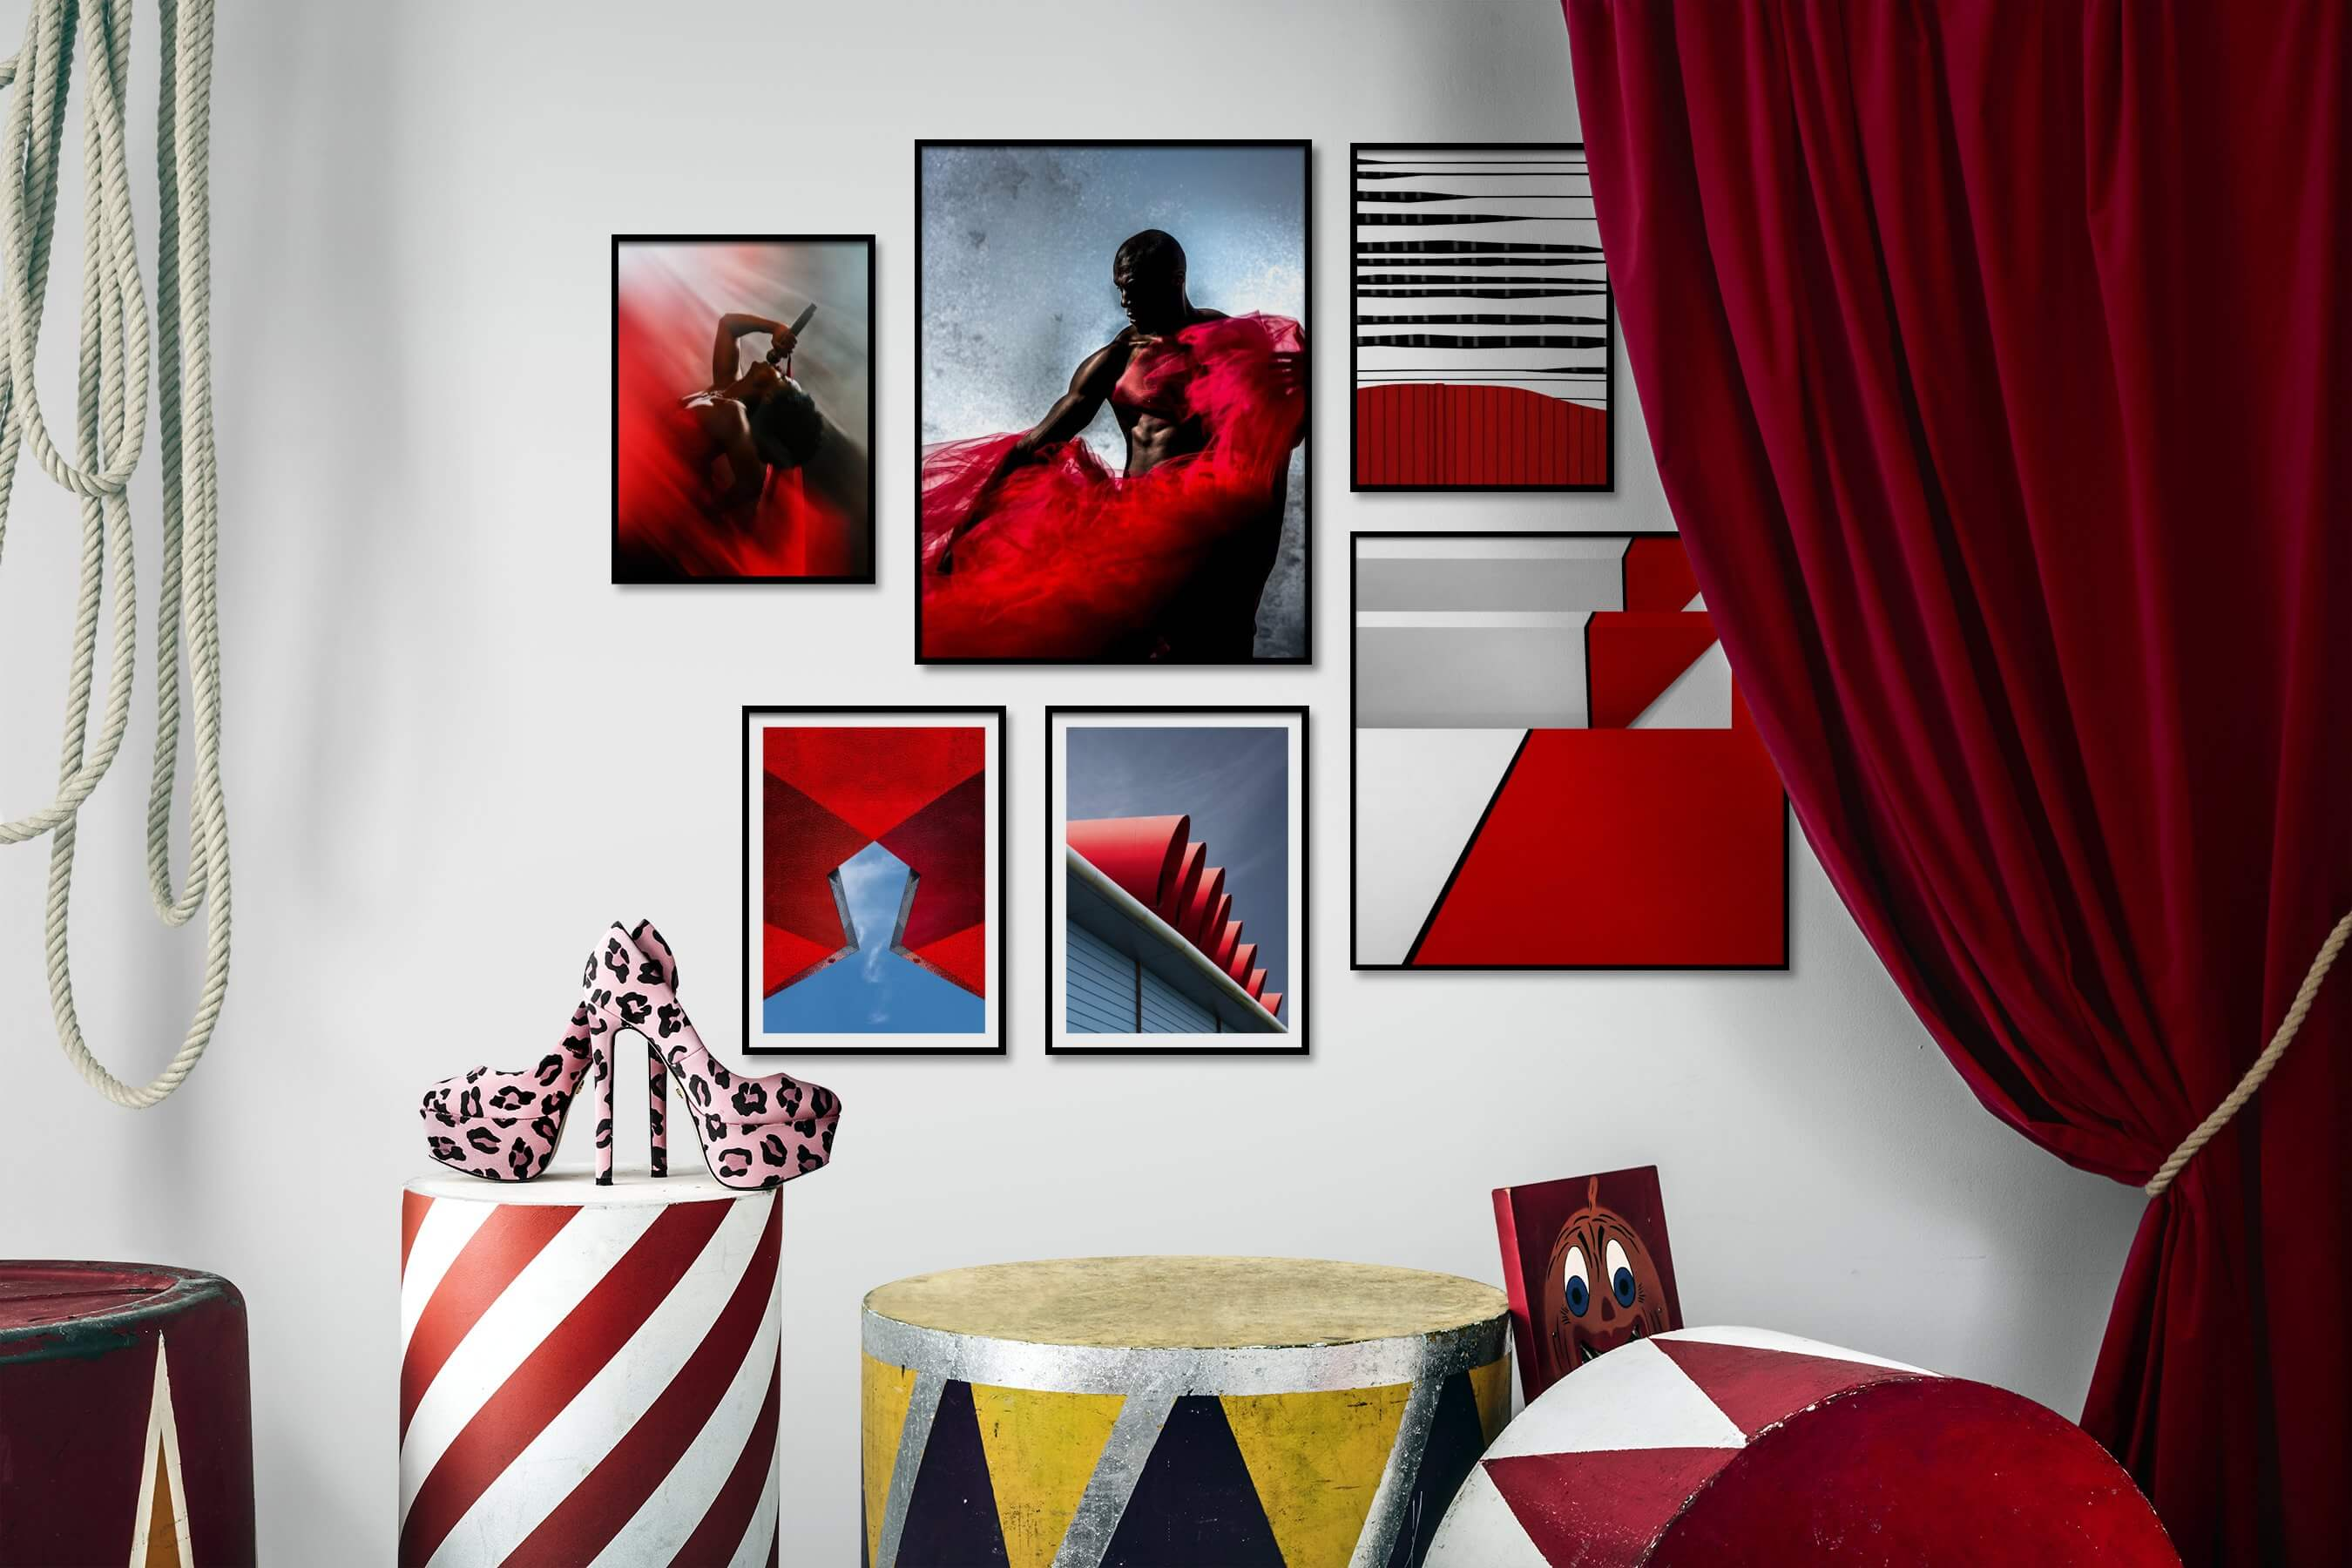 Gallery wall idea with six framed pictures arranged on a wall depicting Fashion & Beauty, Beach & Water, For the Moderate, and For the Minimalist